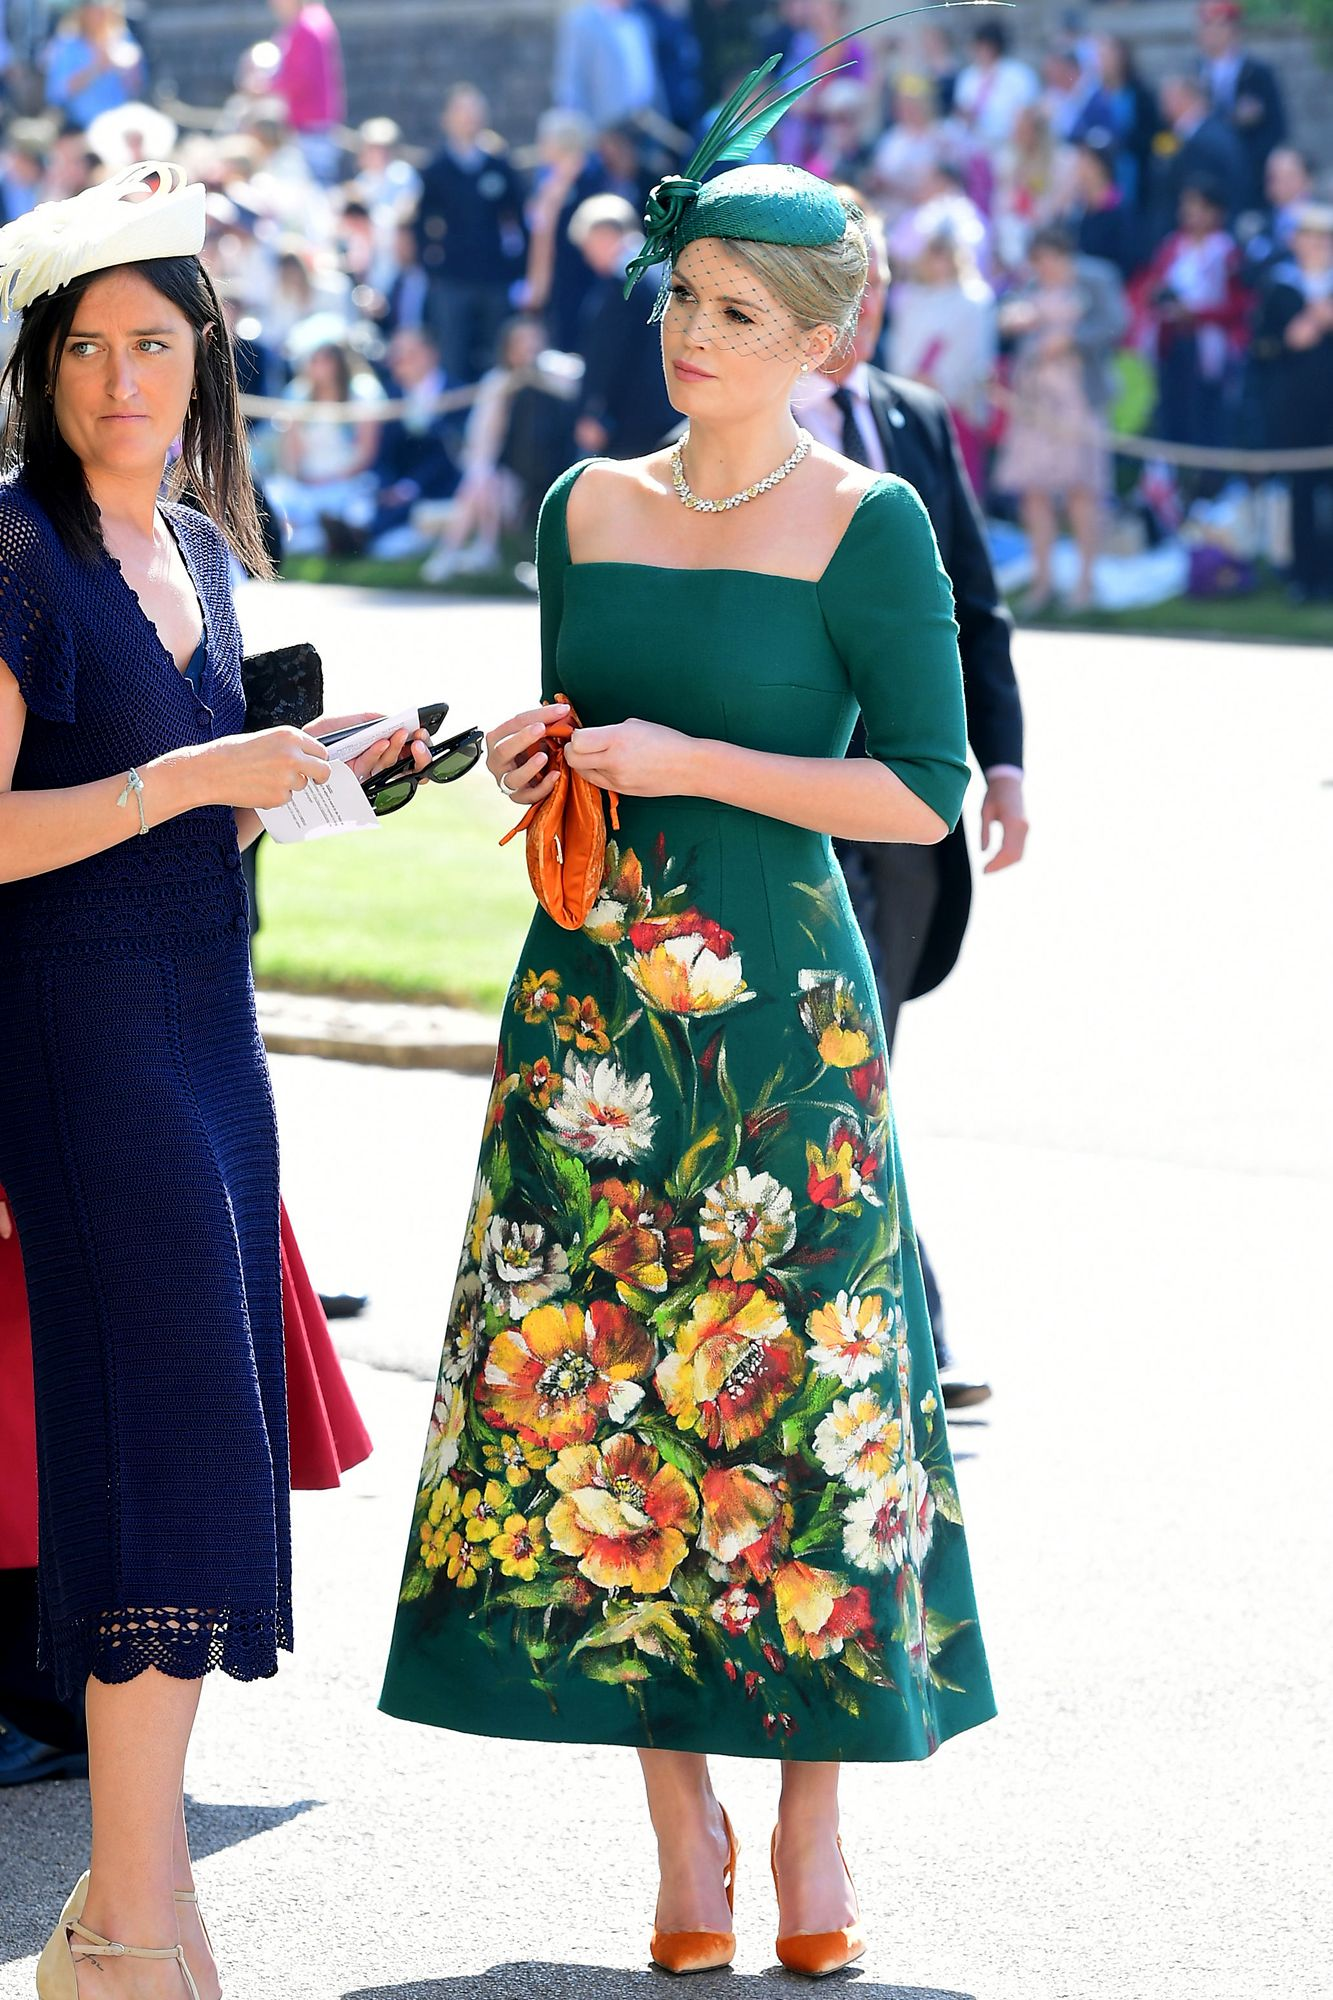 The royal cousin wears a square-neck floral print emerald-green dress with  Bulgari jewelry and orange pumps. Shop the look  Manolo Blahnik pumps 4f4293ebbce3